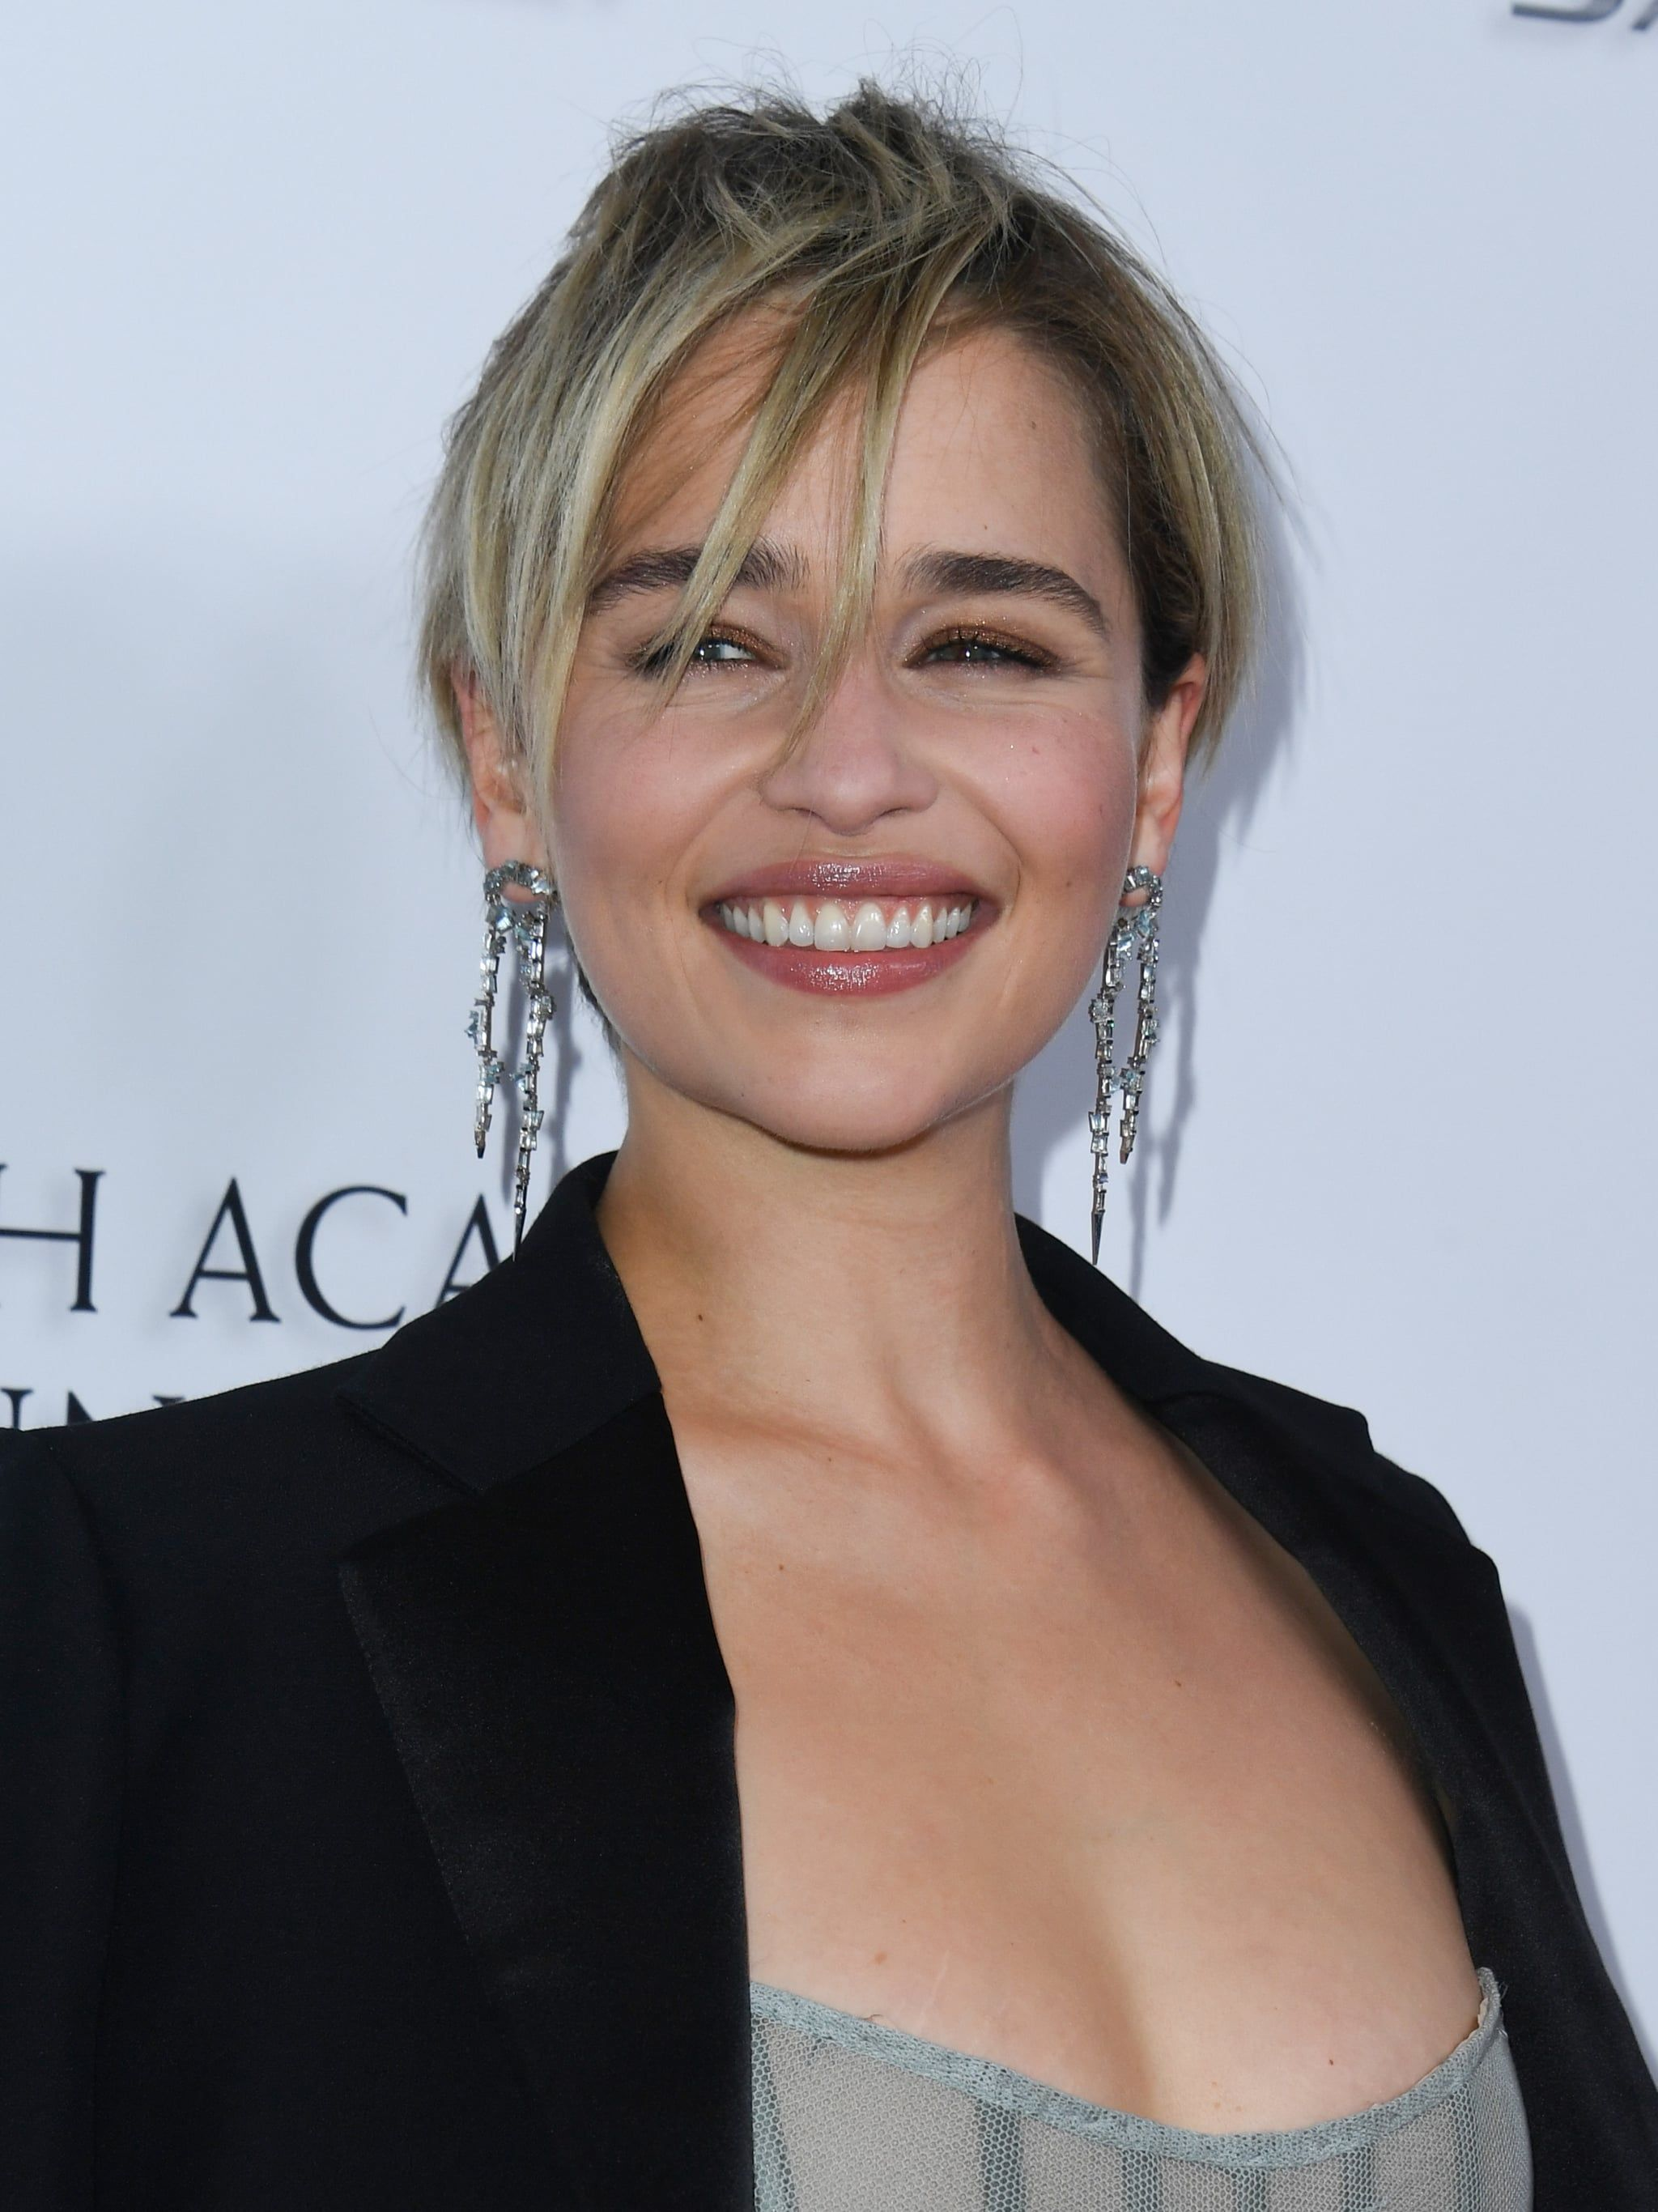 Emilia Clarke Kept It Real With Her Latest Makeup Look She Was Sick As A Dog